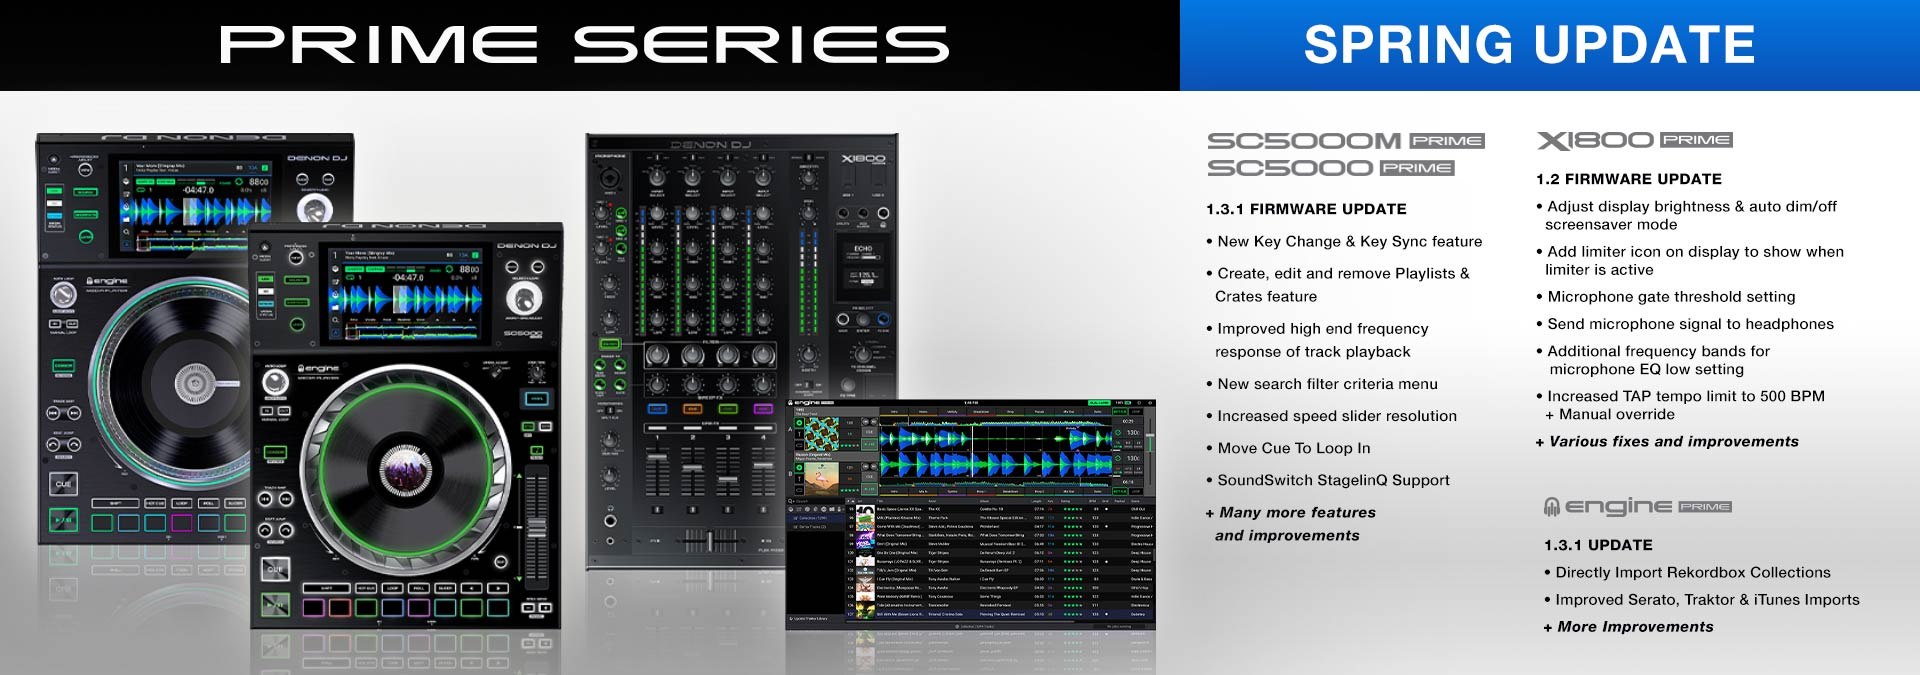 Spring Firmware Update 2019 for Denon DJ Prime Series